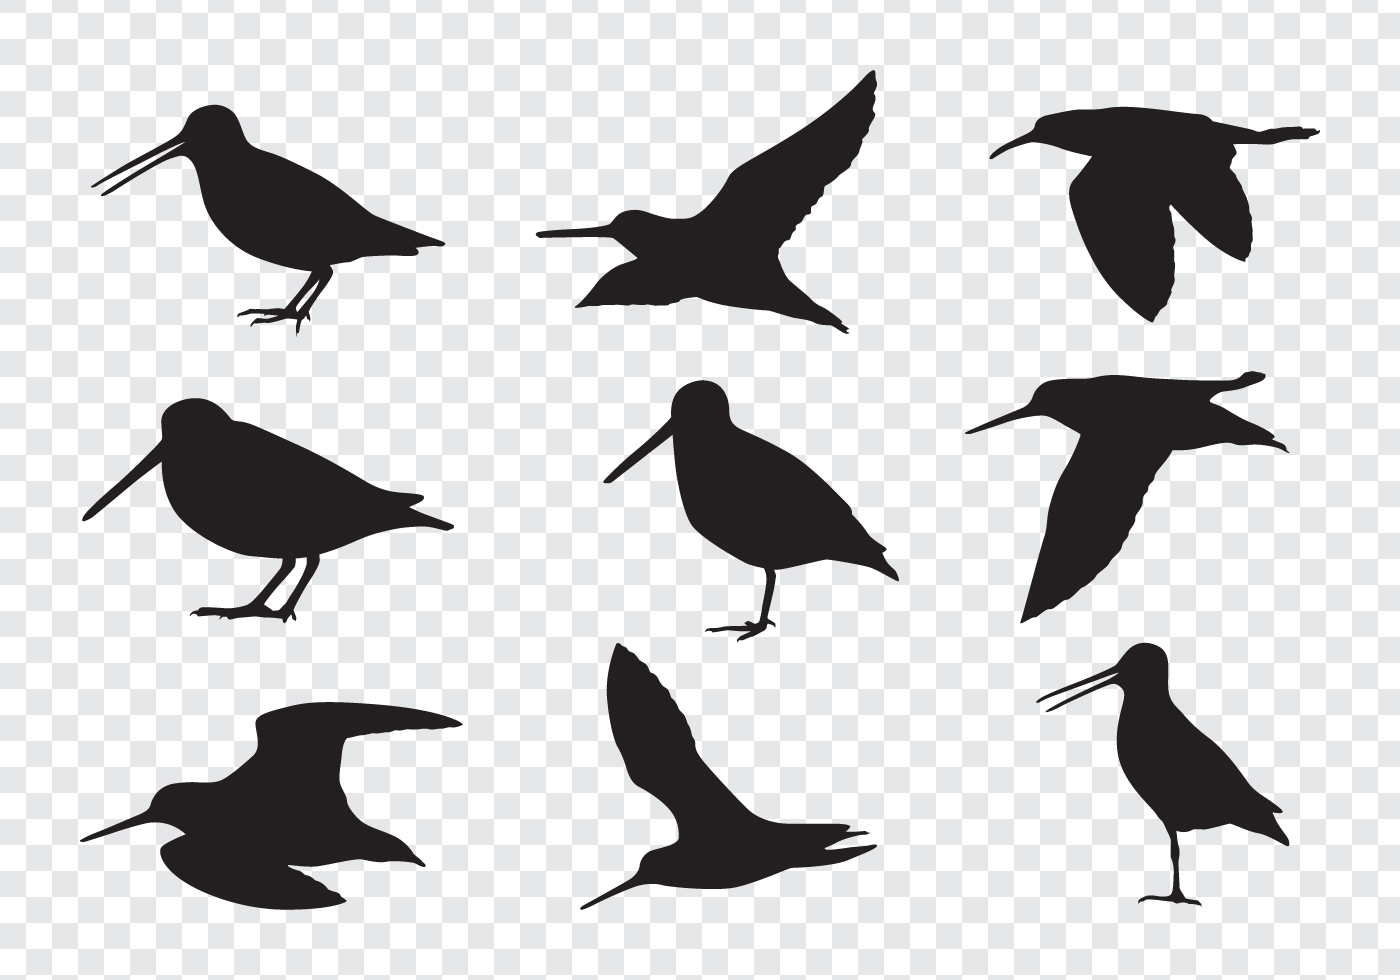 Snipe Birds Silhouettes Download Free Vectors Clipart